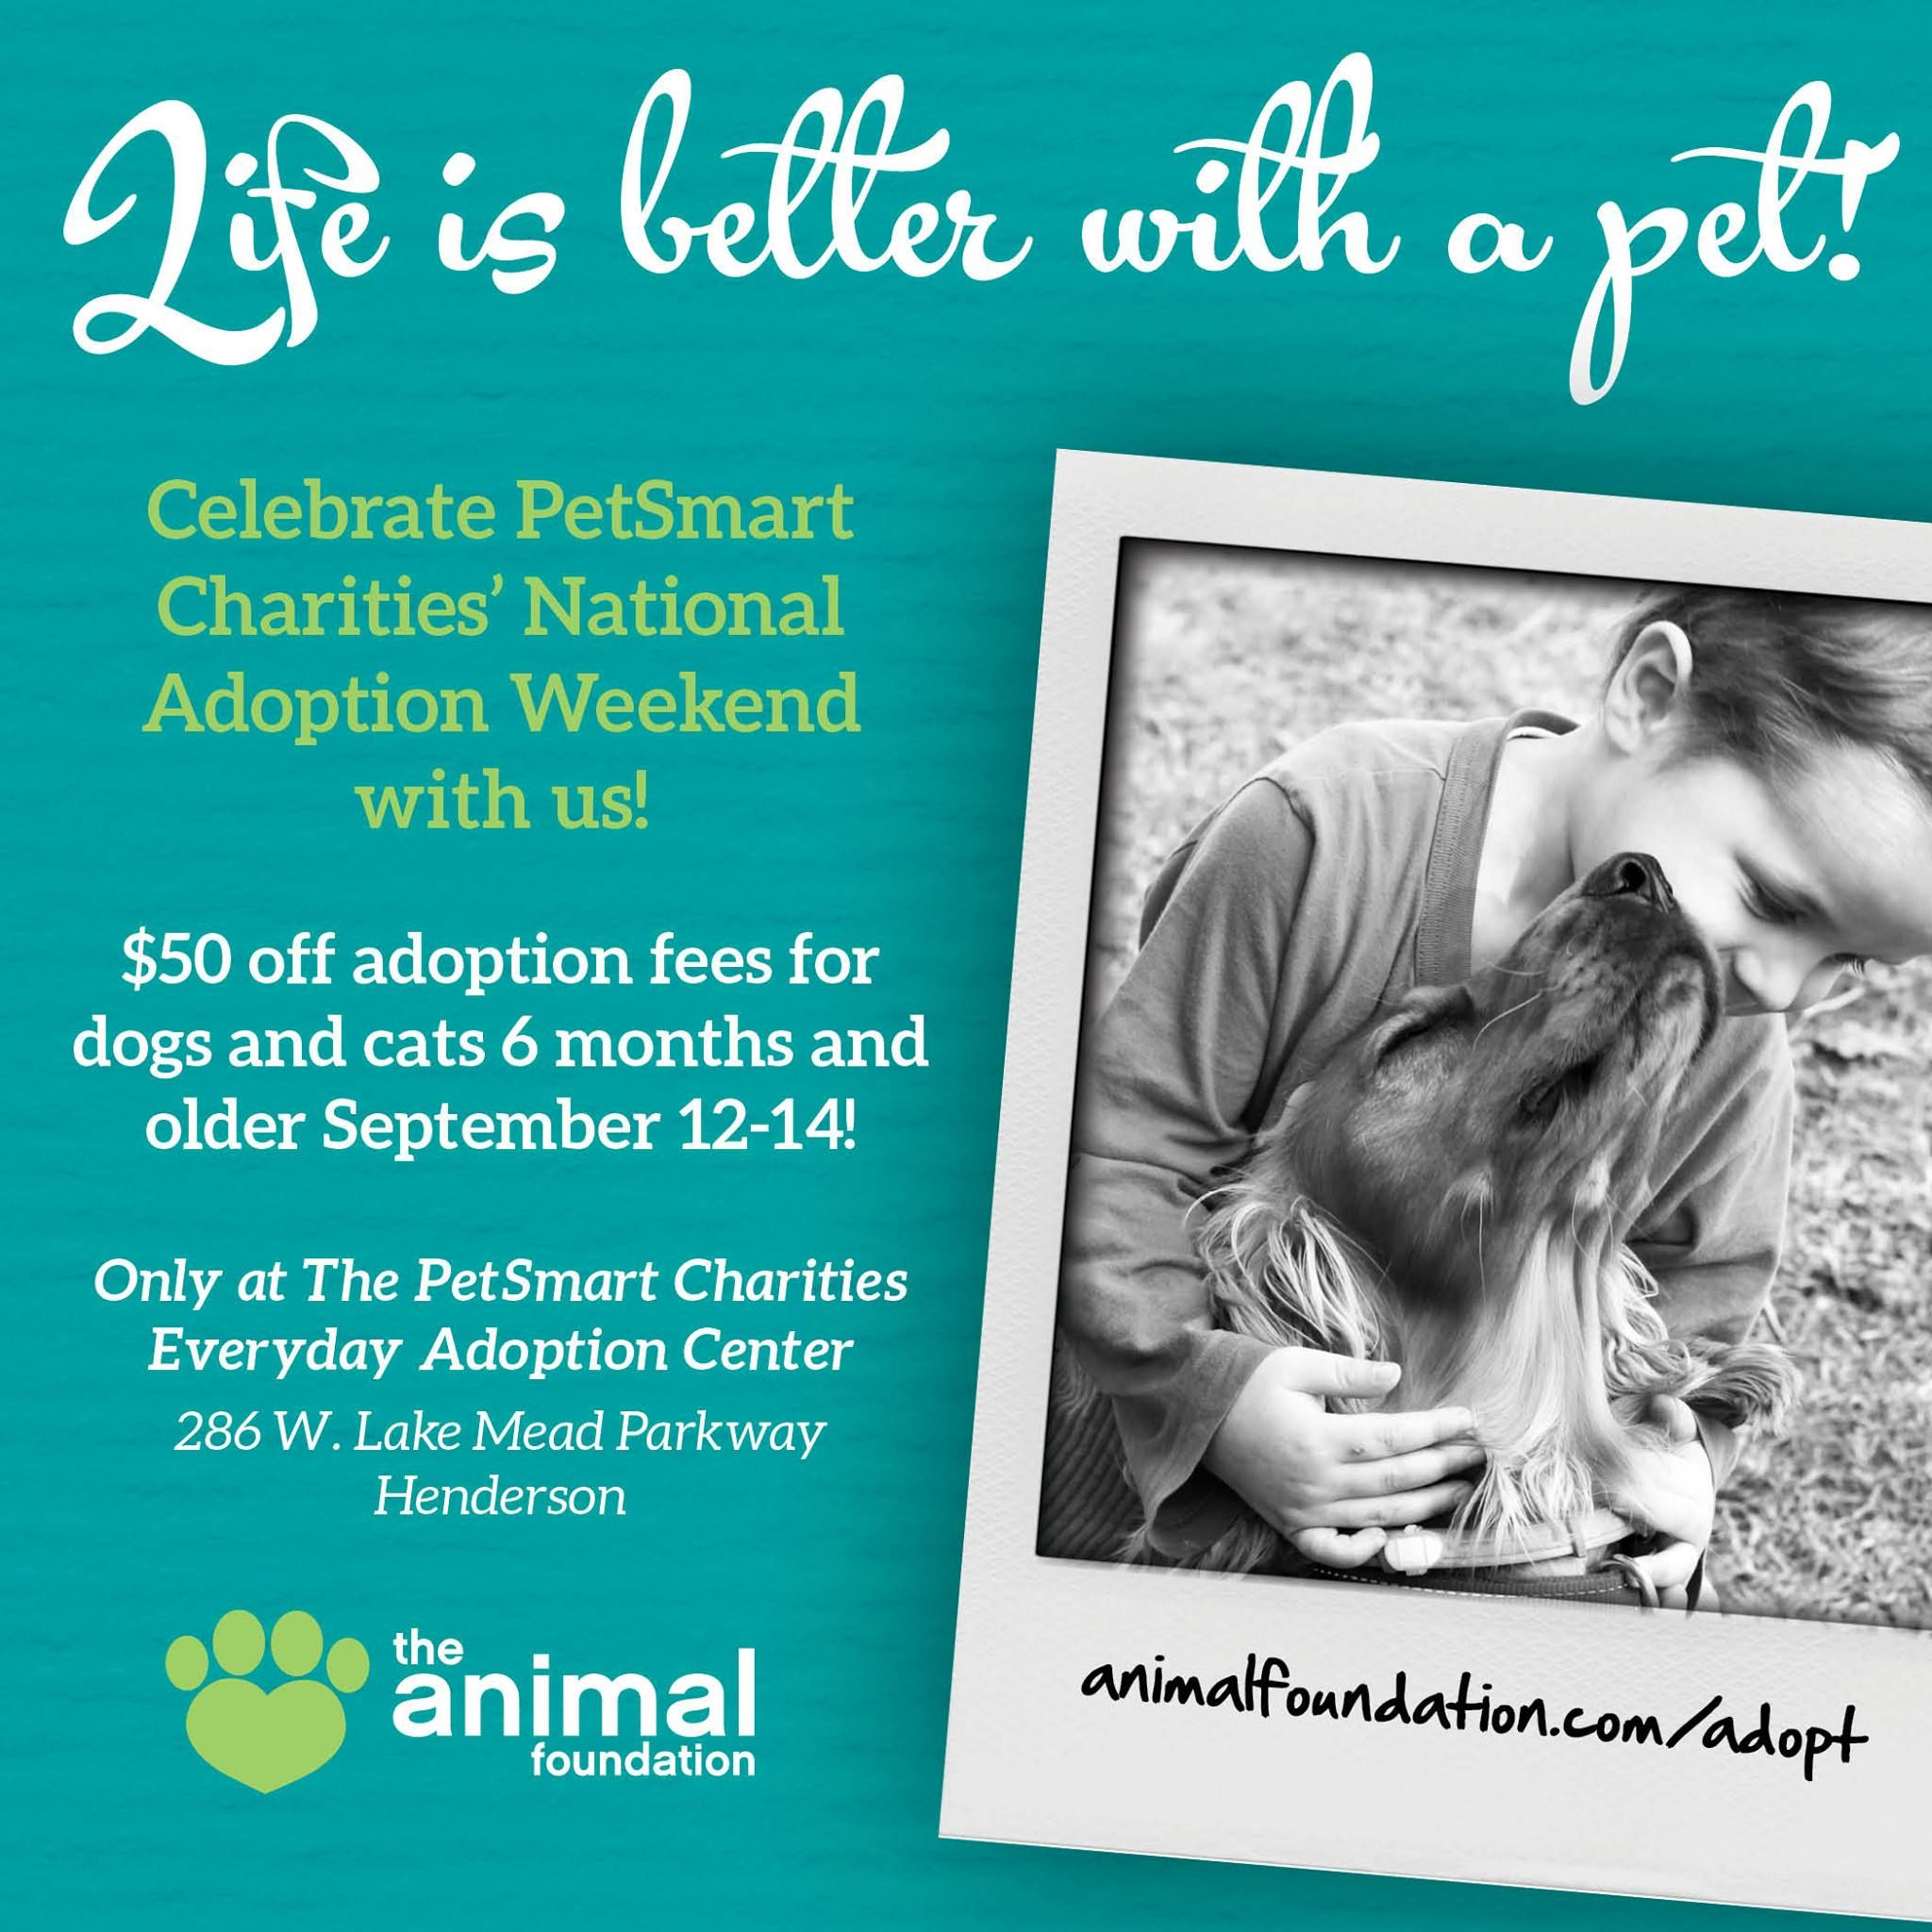 Life Is Better With A Pet Join Us For The Petsmart Charities National Adoption Weekend This Friday Saturday And Sunday Adoption Fe Petsmart Adoption Charity